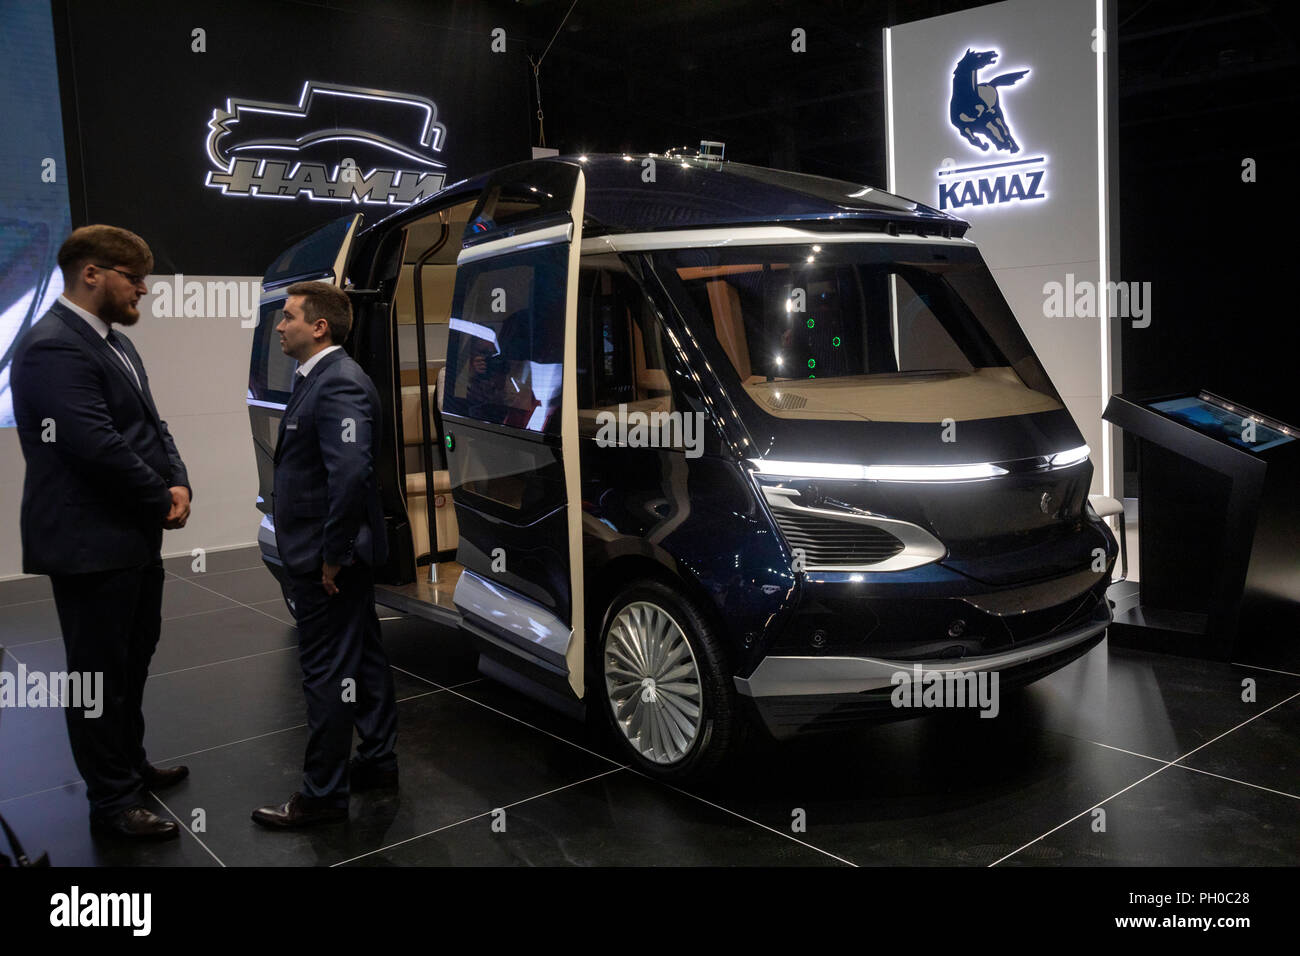 Moscow, Russia. 29th August 2018. A KAMAZ-1221 SHATL autonomous electric bus on display at the 2018 Moscow International Motor Show at the Crocus Expo exhibition center Credit: Nikolay Vinokurov/Alamy Live News - Stock Image